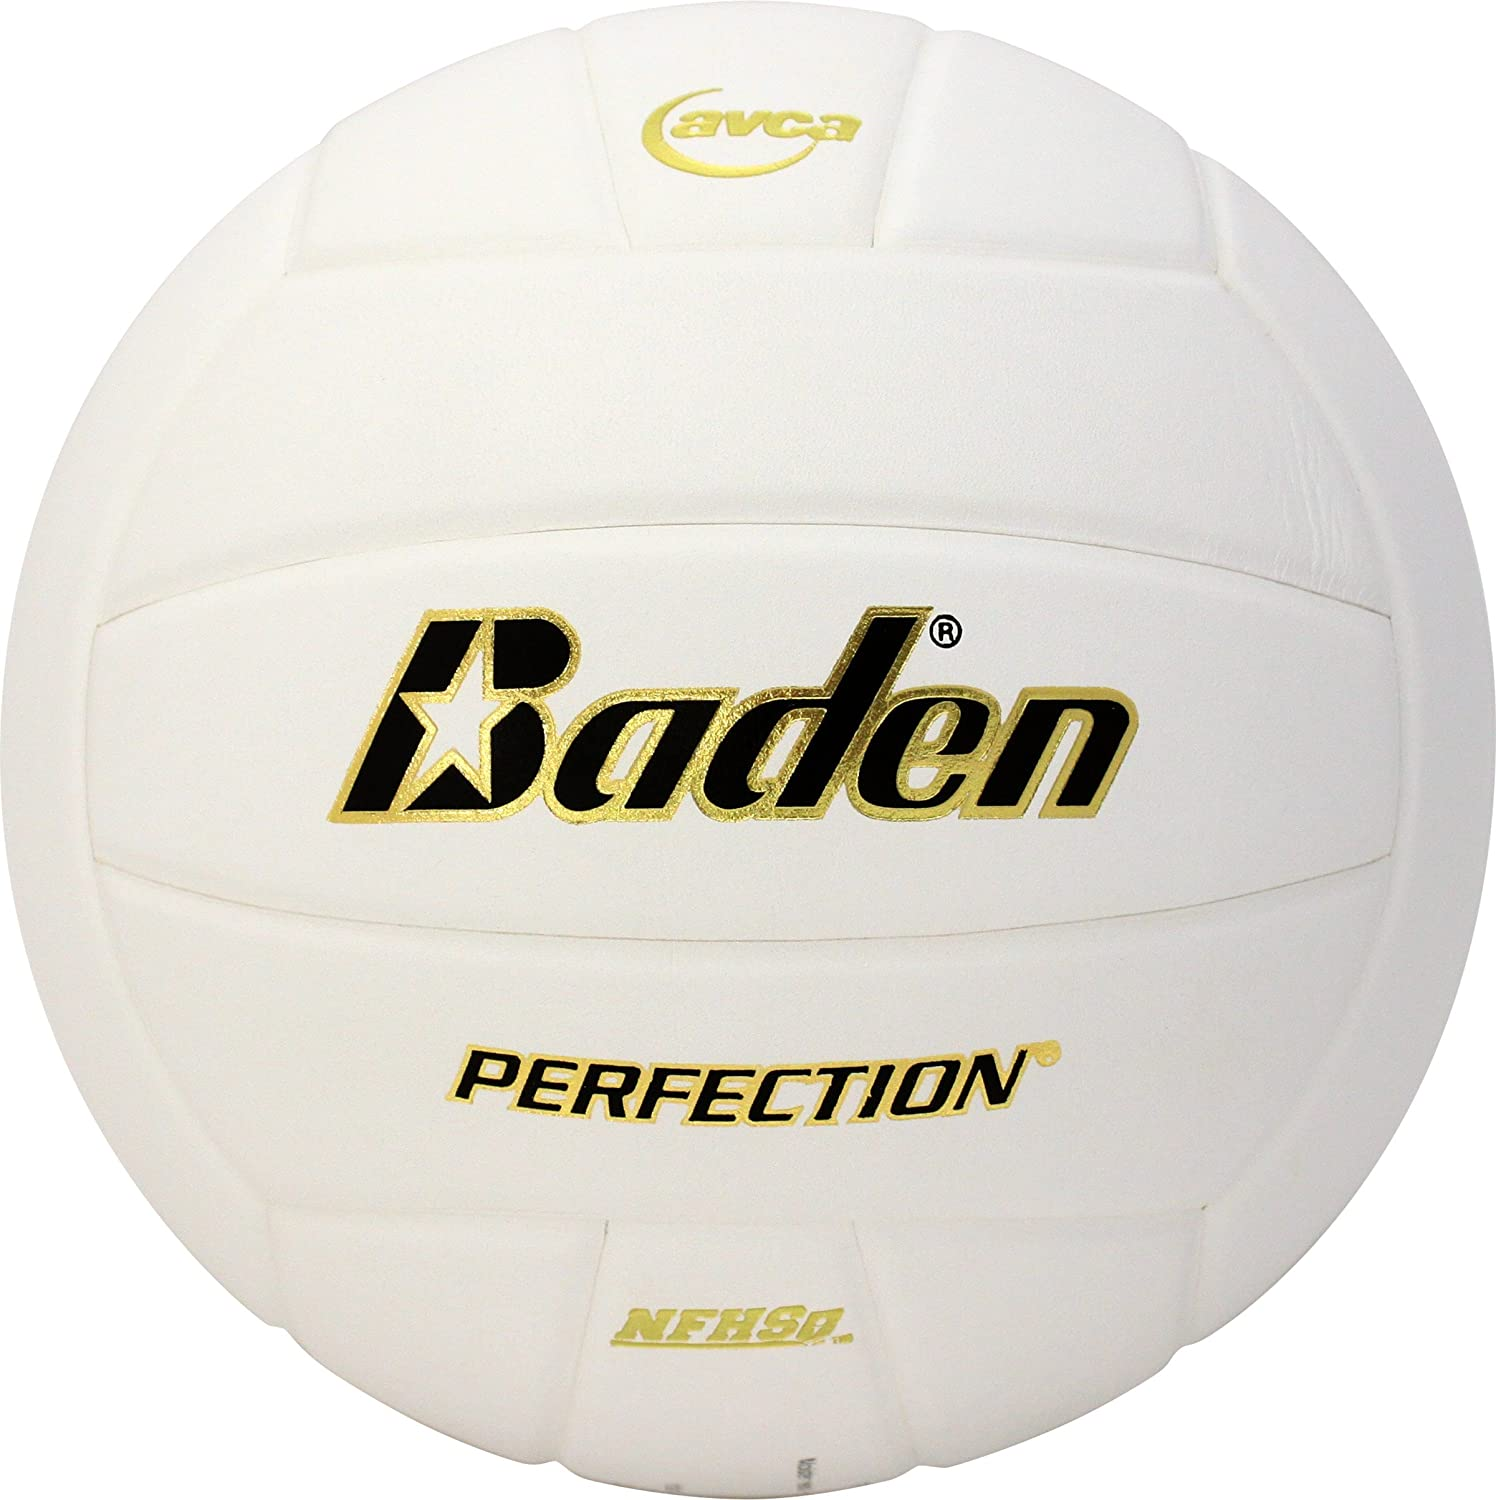 Baden Perfection Elite Leder Volleyball